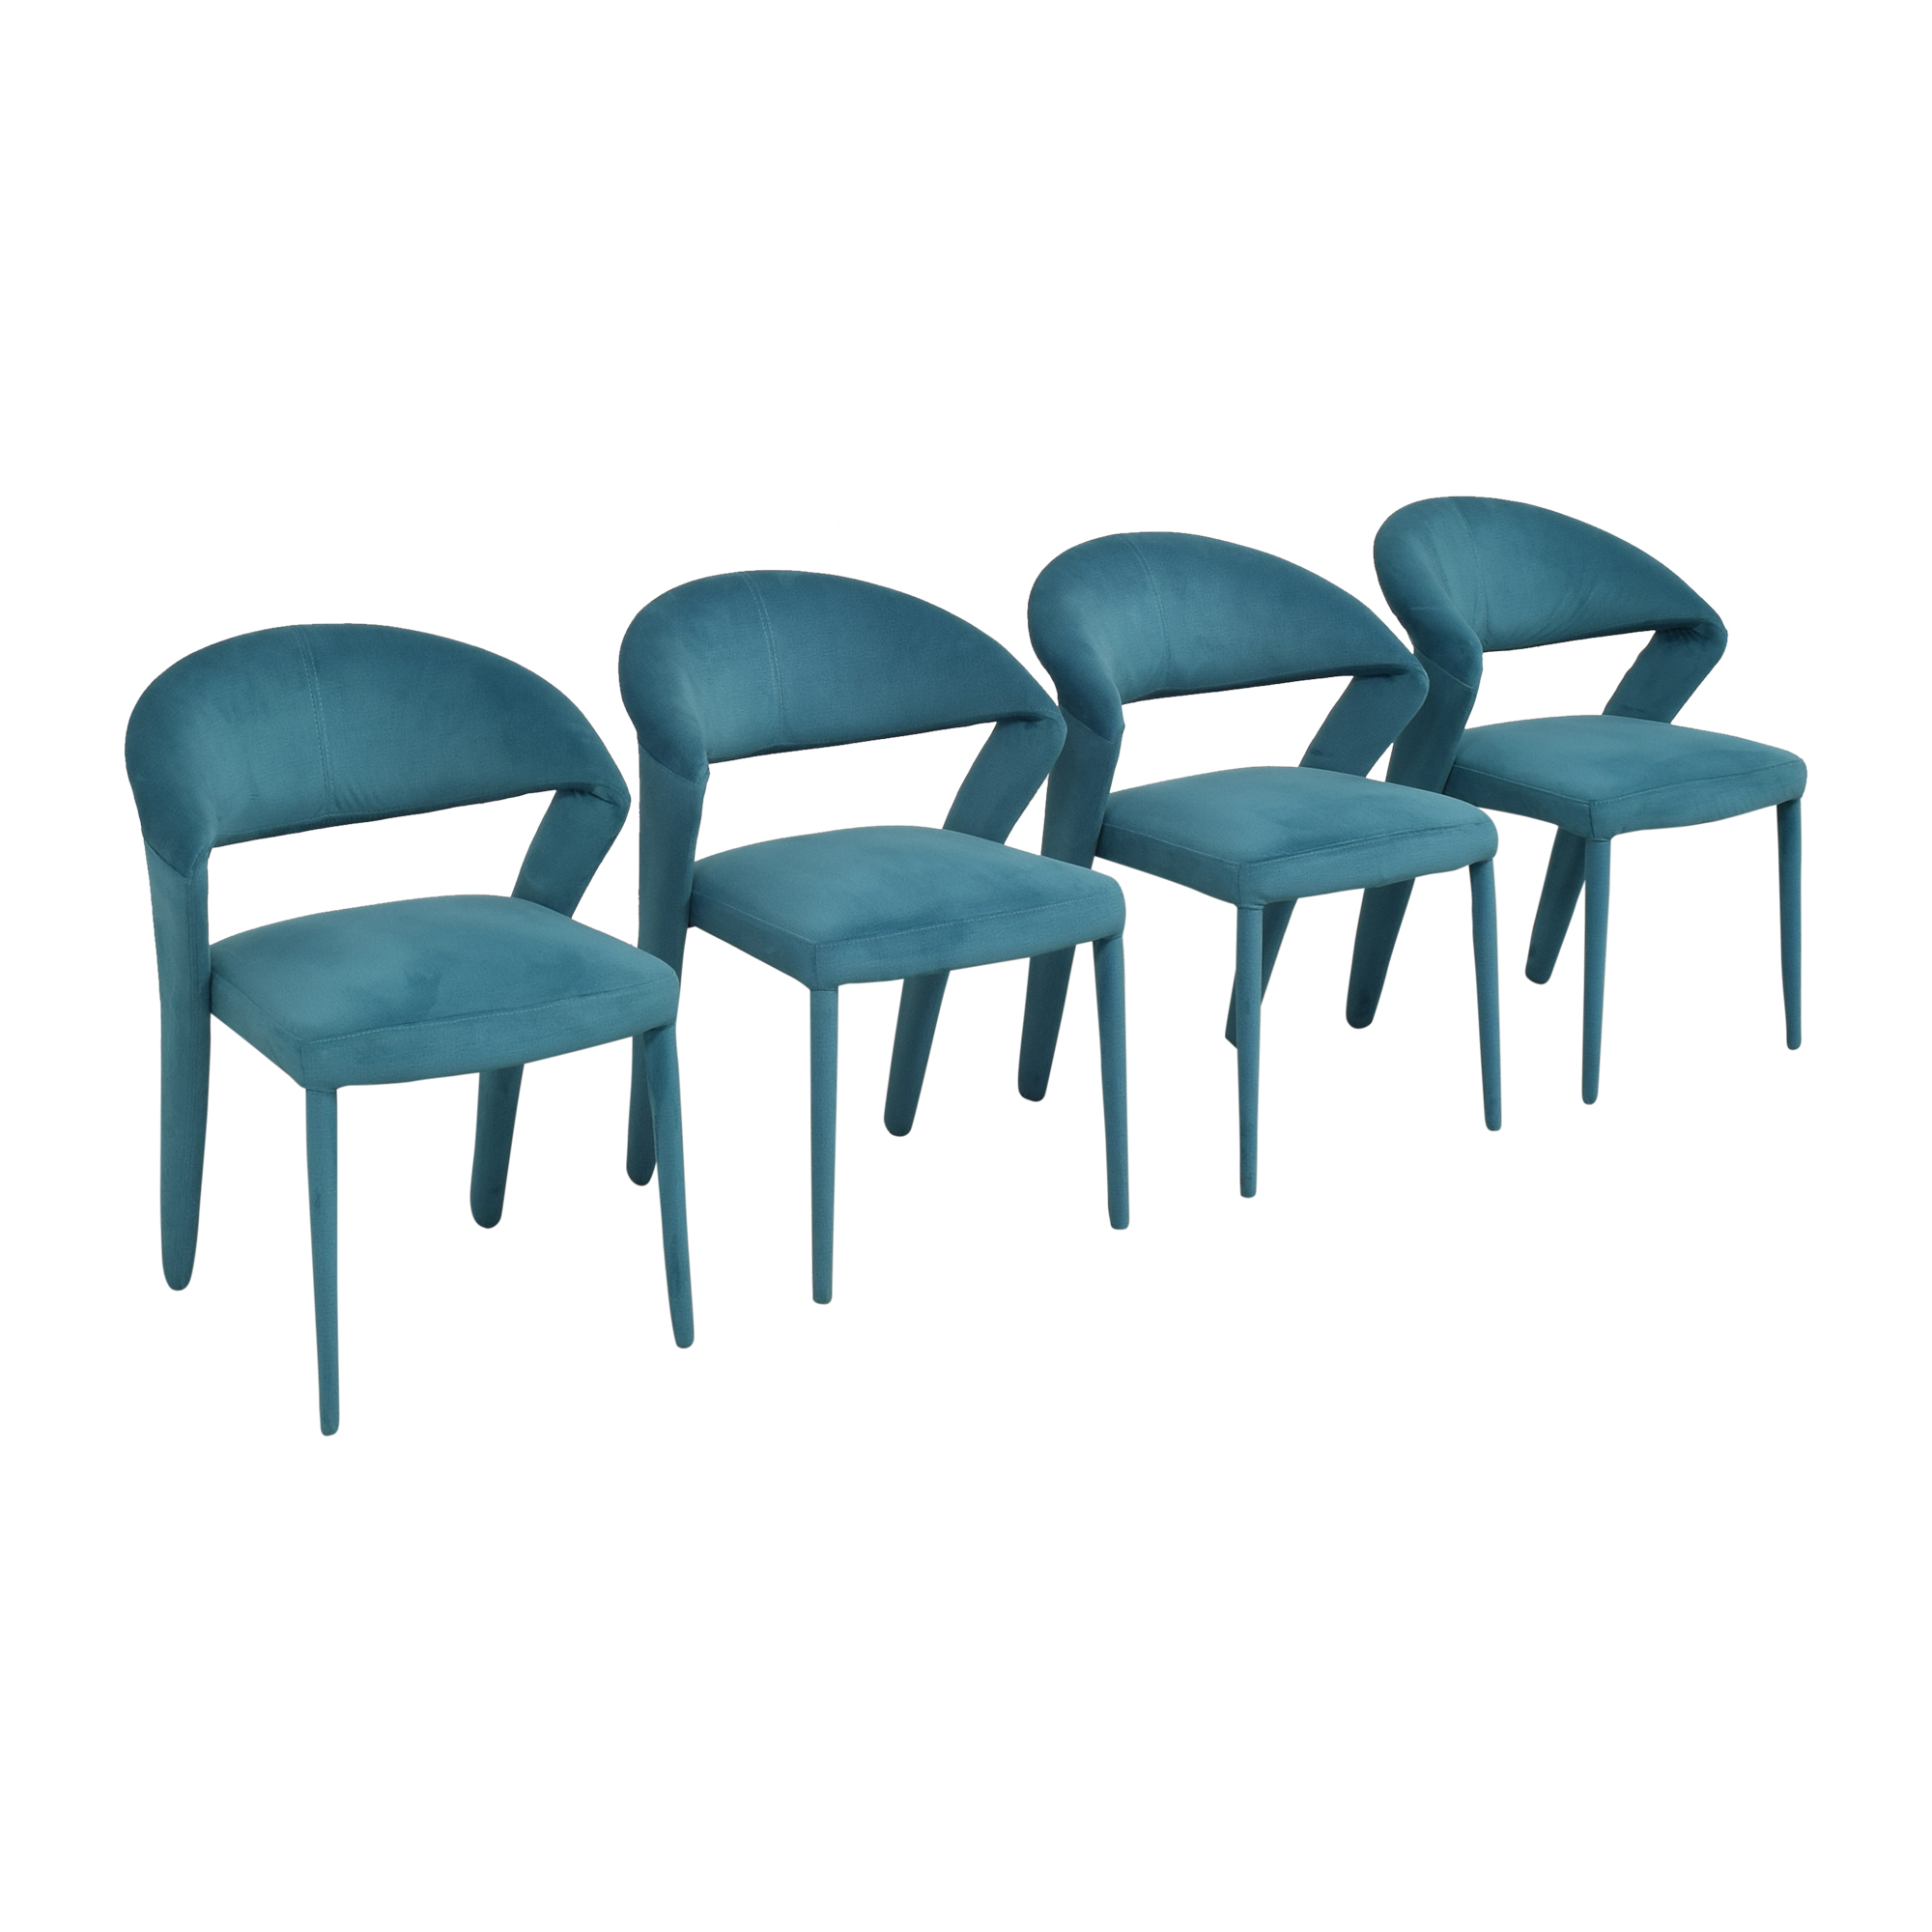 Moe's Home Collection Moe's Home Collection Lennox Dining Chairs Dining Chairs